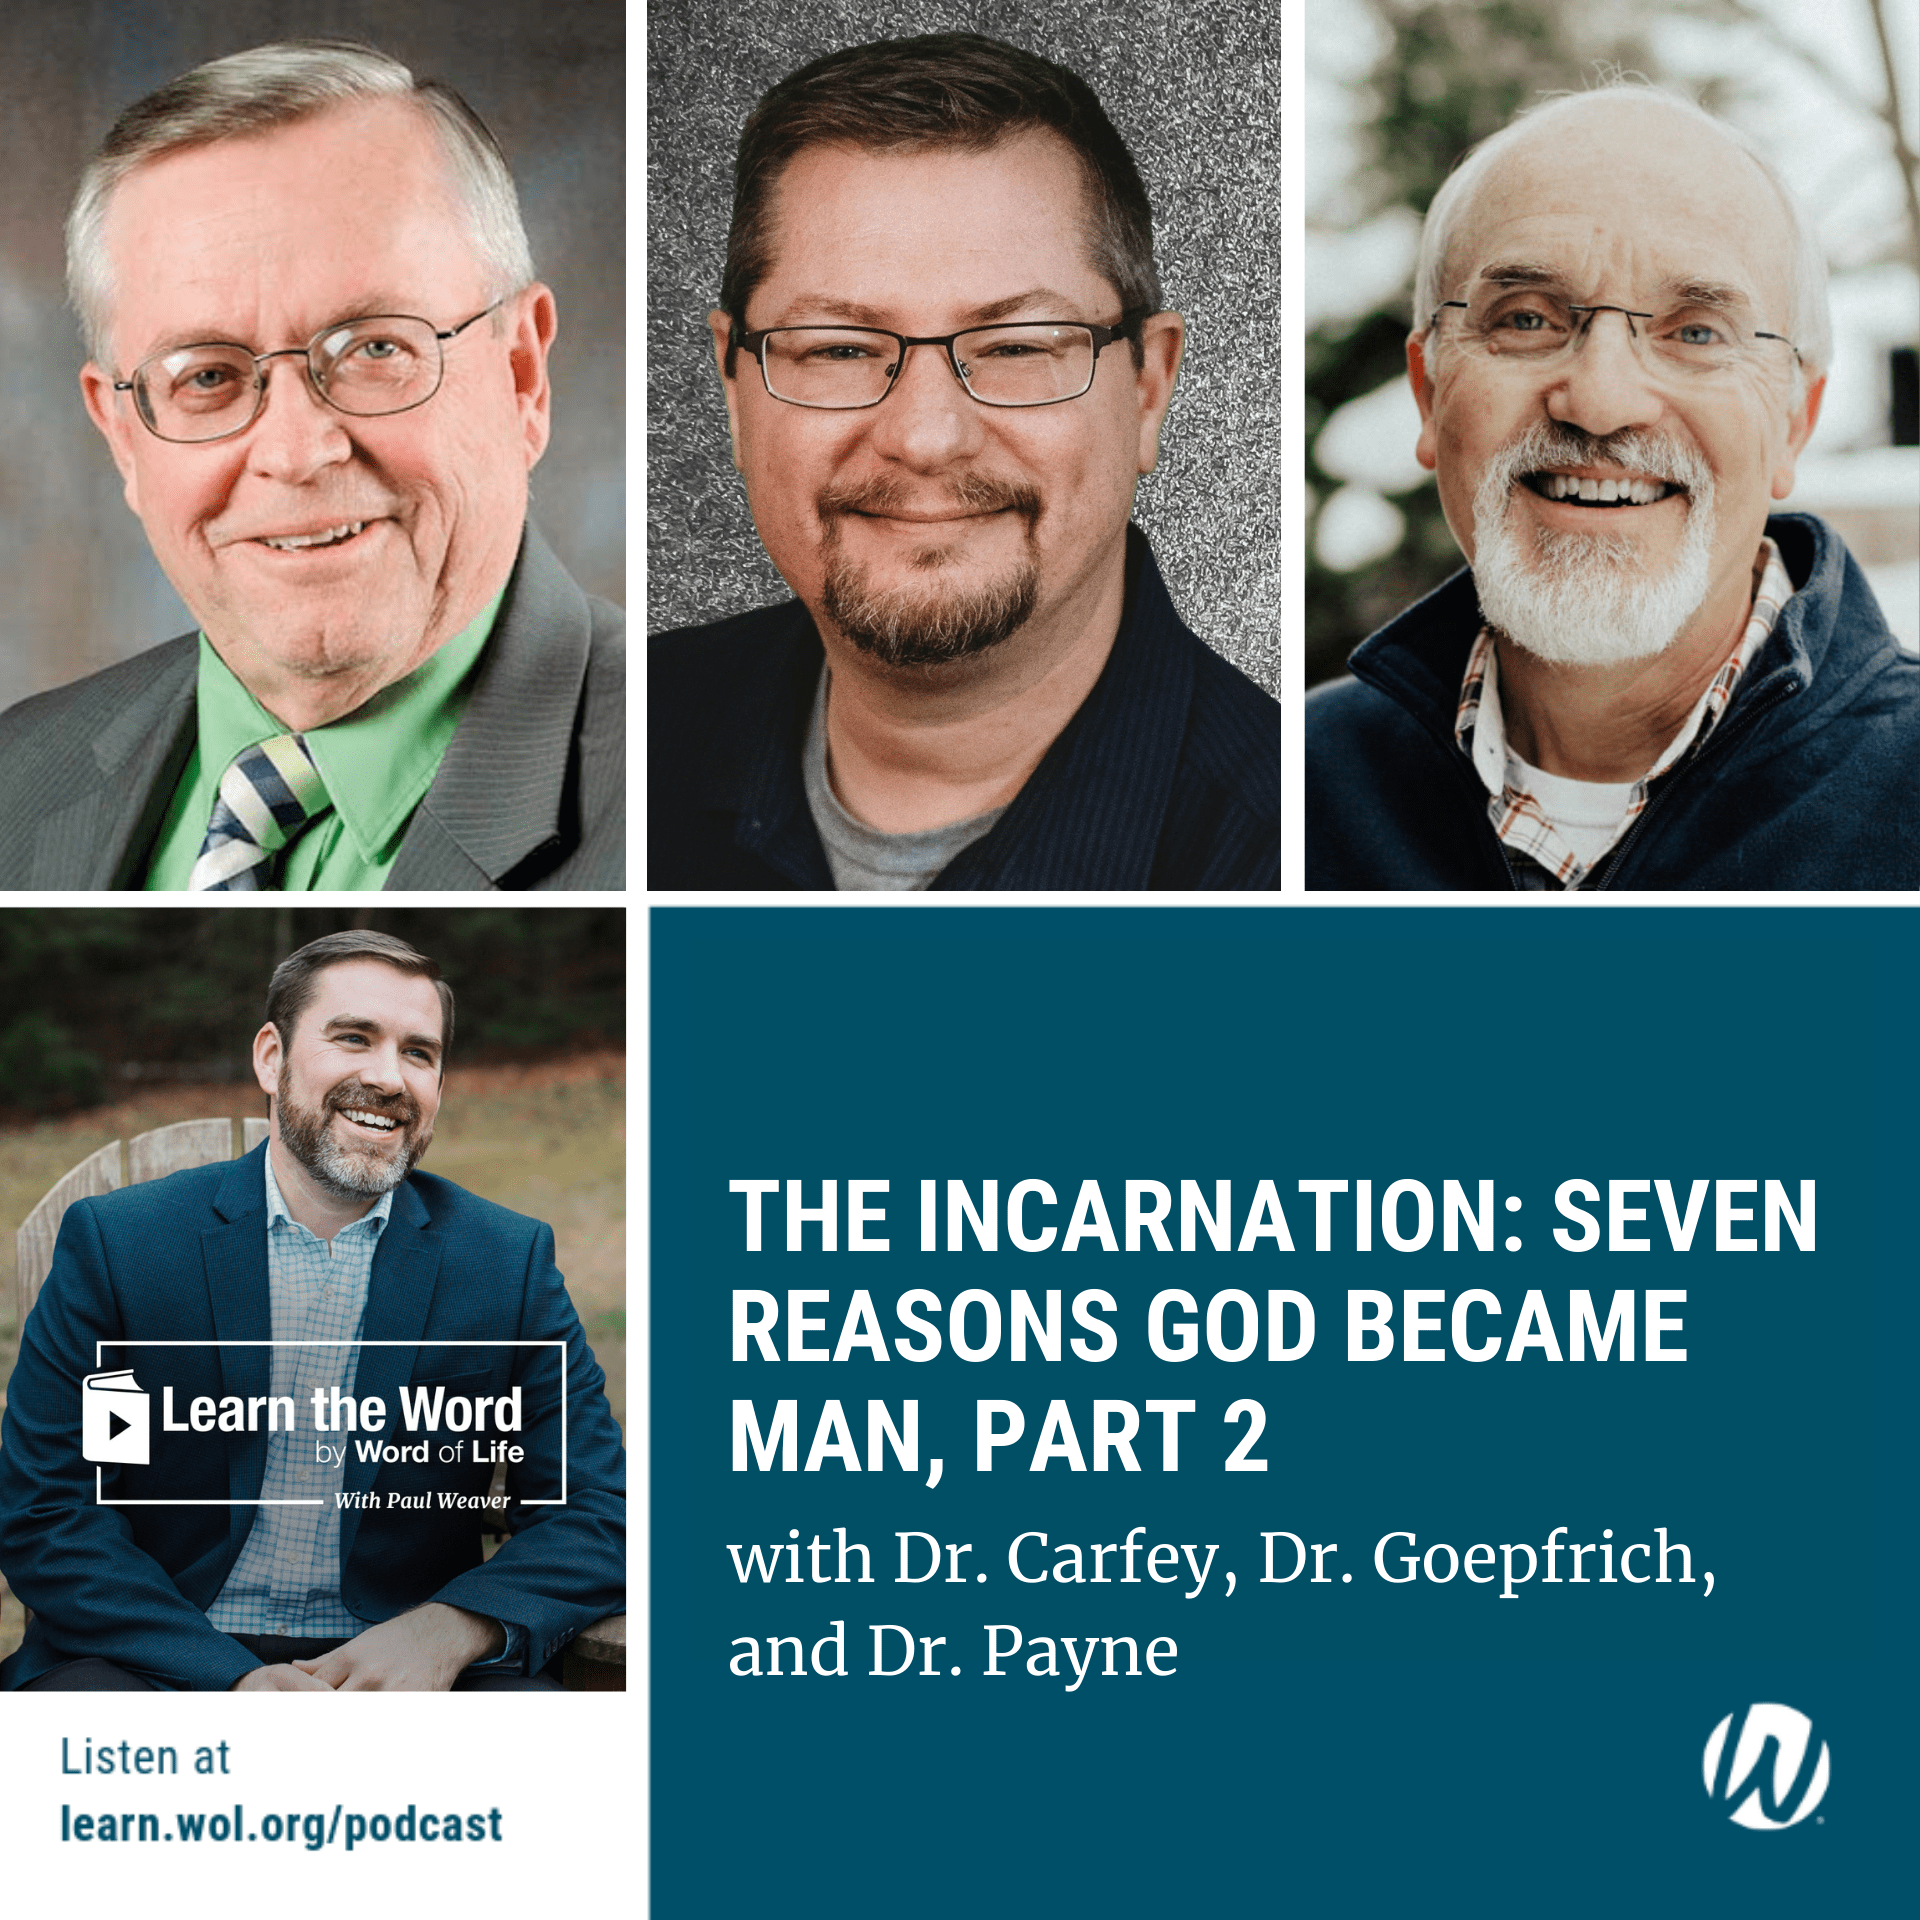 LTW150 - The Incarnation: Seven Reasons God Became Man, Part 2 – with Dr. Carfrey, Dr. Goepfrich, and Dr. Payne cover art